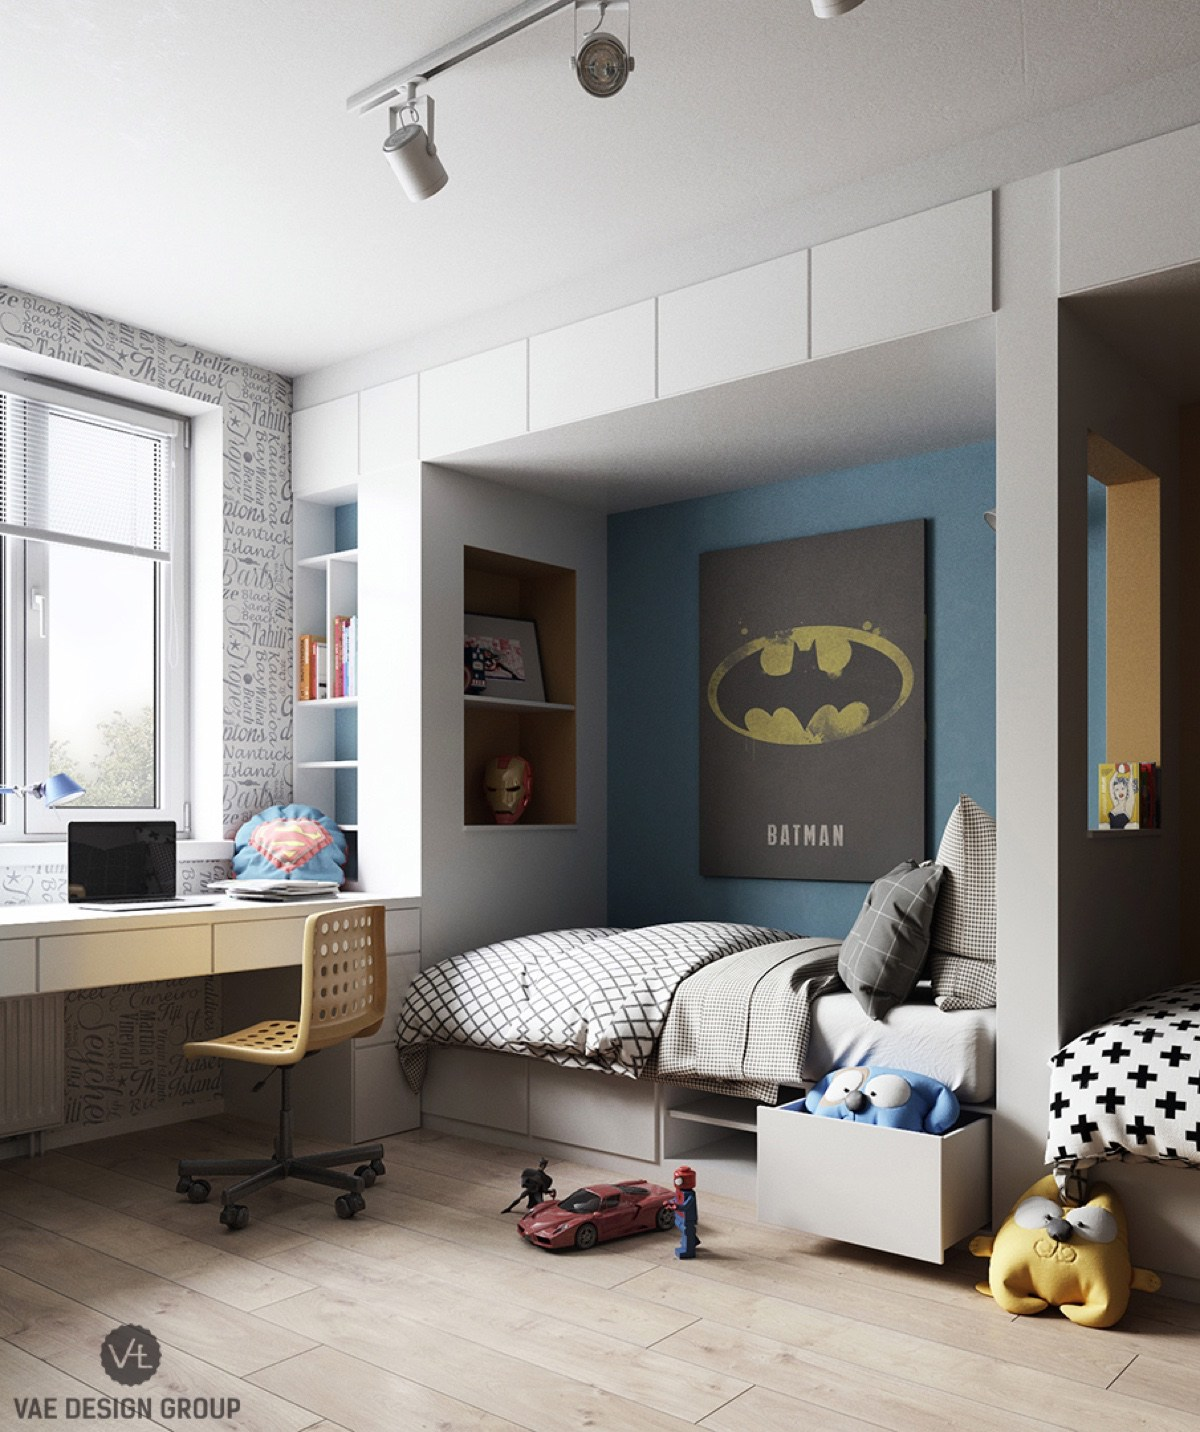 batman-inlet-kids-bedroom-space-creation